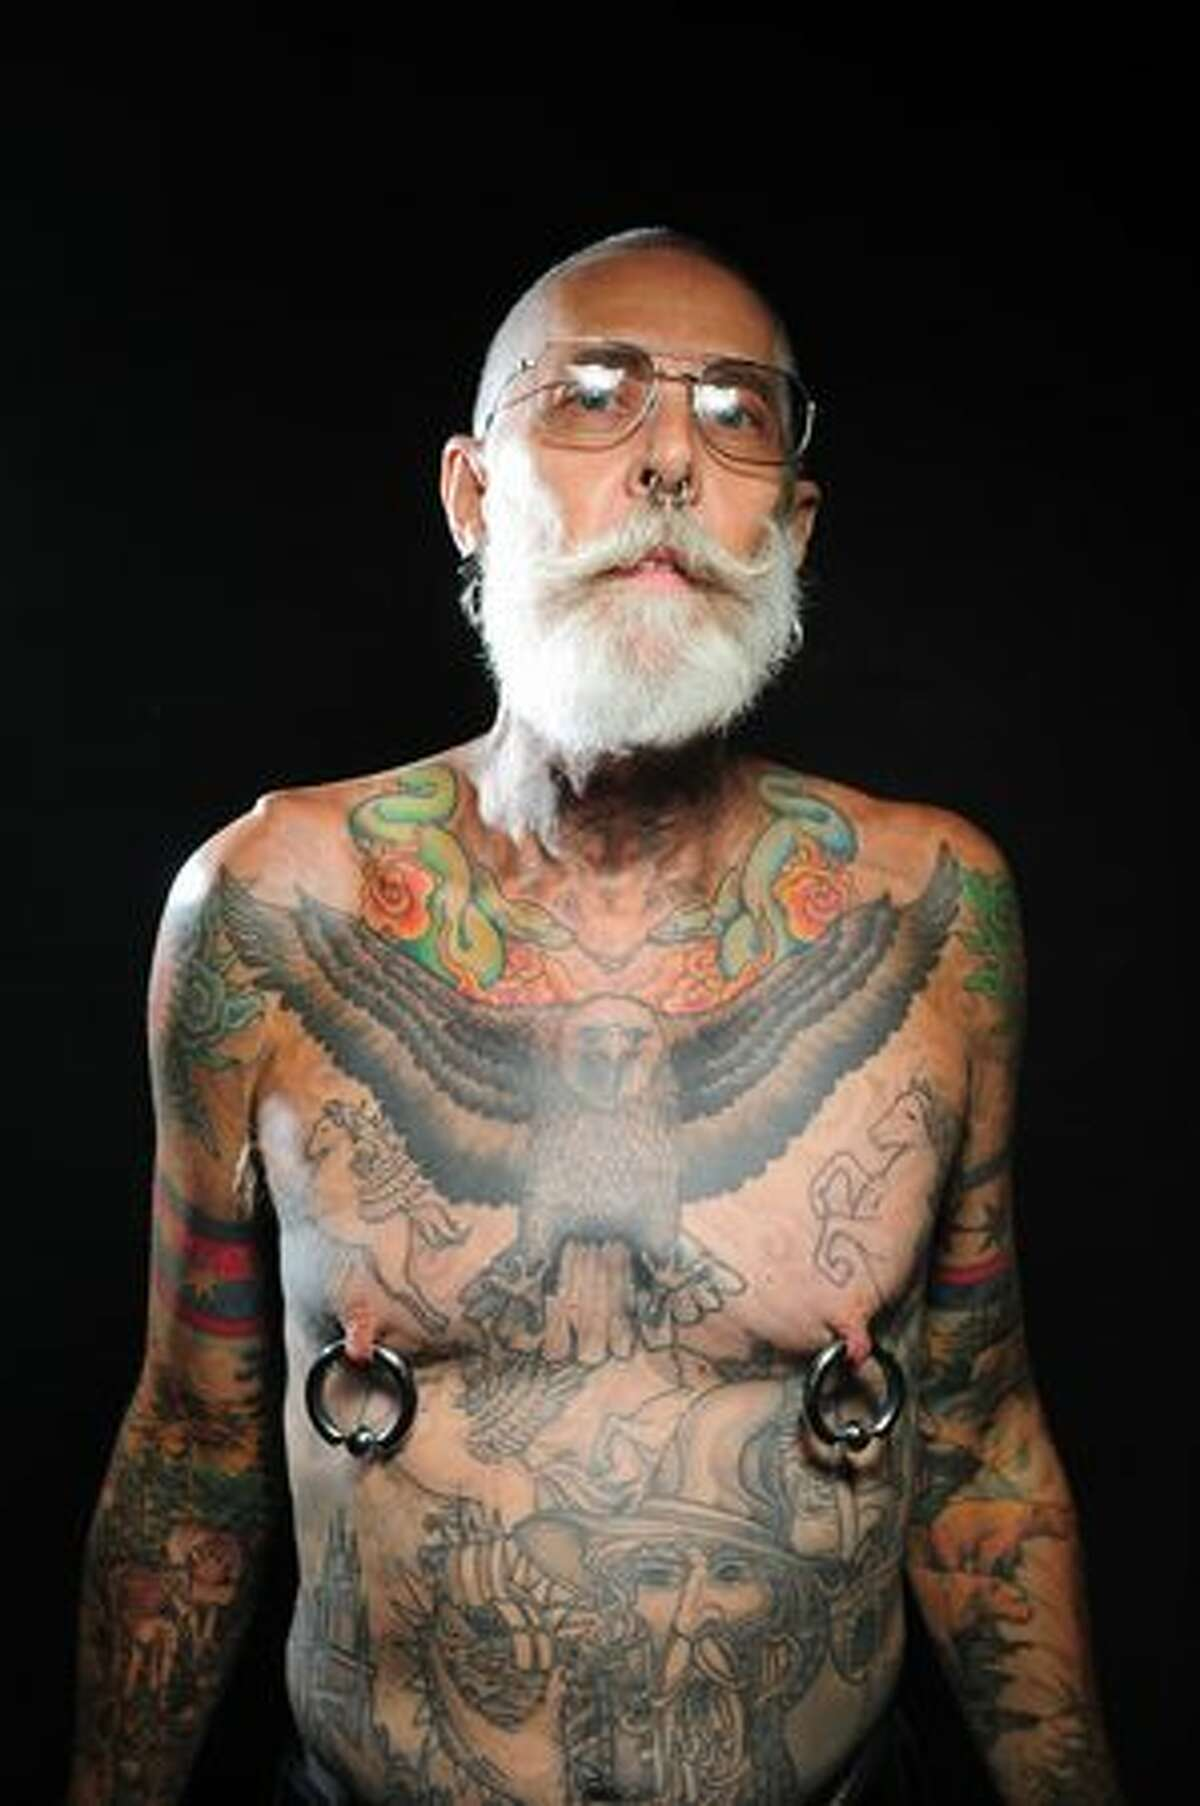 Dan Adcock poses for a portrait during the first day of the Seattle Tattoo Expo at Seattle Center on Aug. 7, 2009.